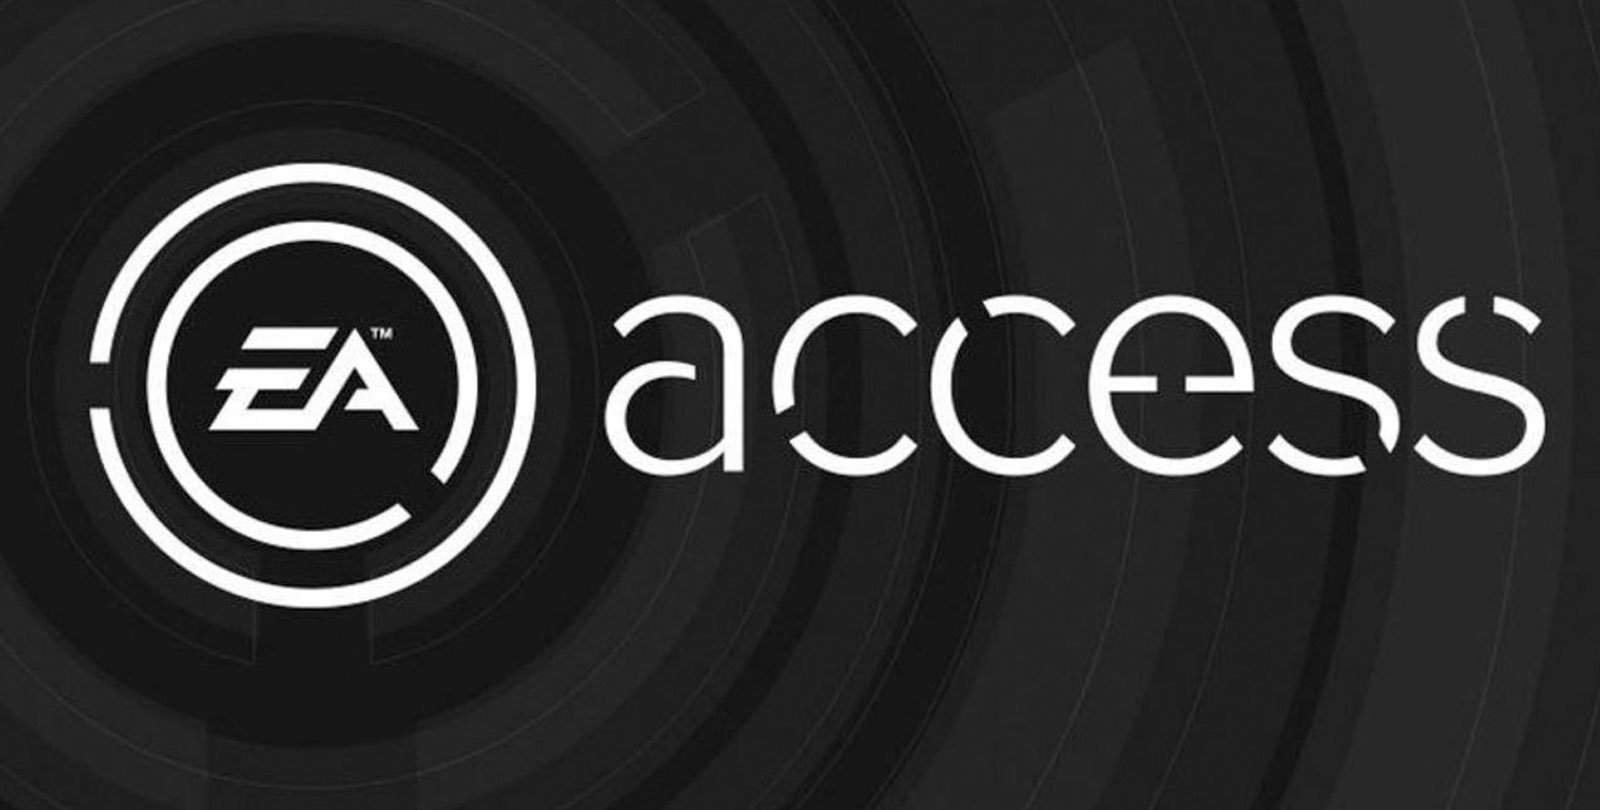 EA Access Subscription Gaming Service is Exclusive to Xbox One